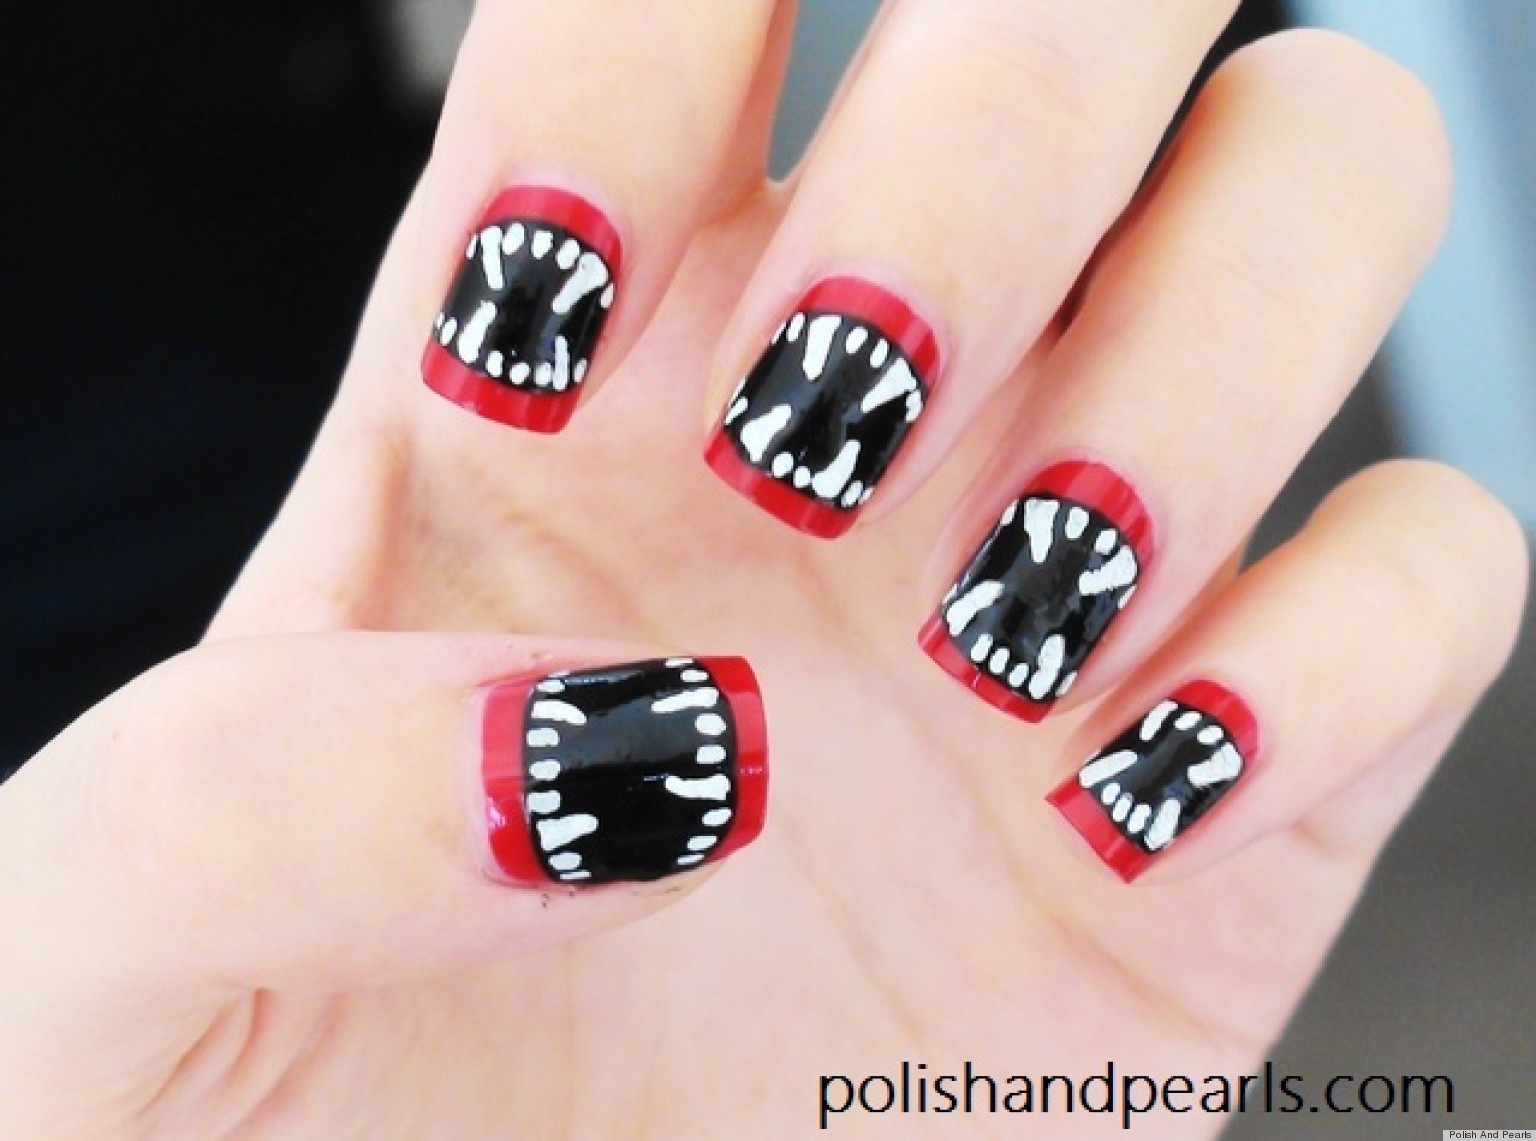 o-DIY-NAIL-ART-HALLOWEEN-VAMPIRE-FANGS-facebook - 15 Halloween Nail Art Designs You Can Do At Home!